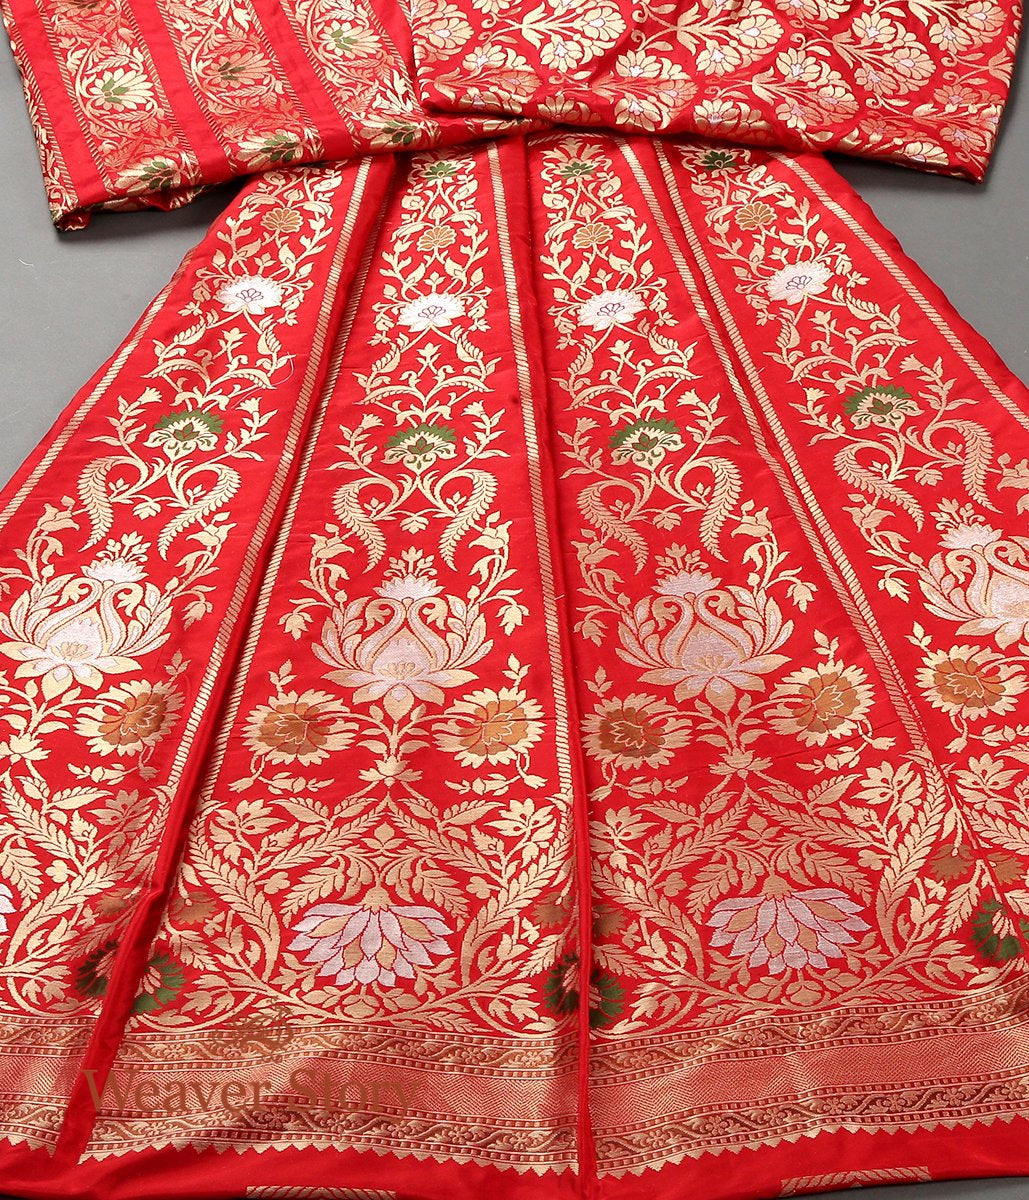 Handwoven Red Banarasi Lehenga with Meenakari